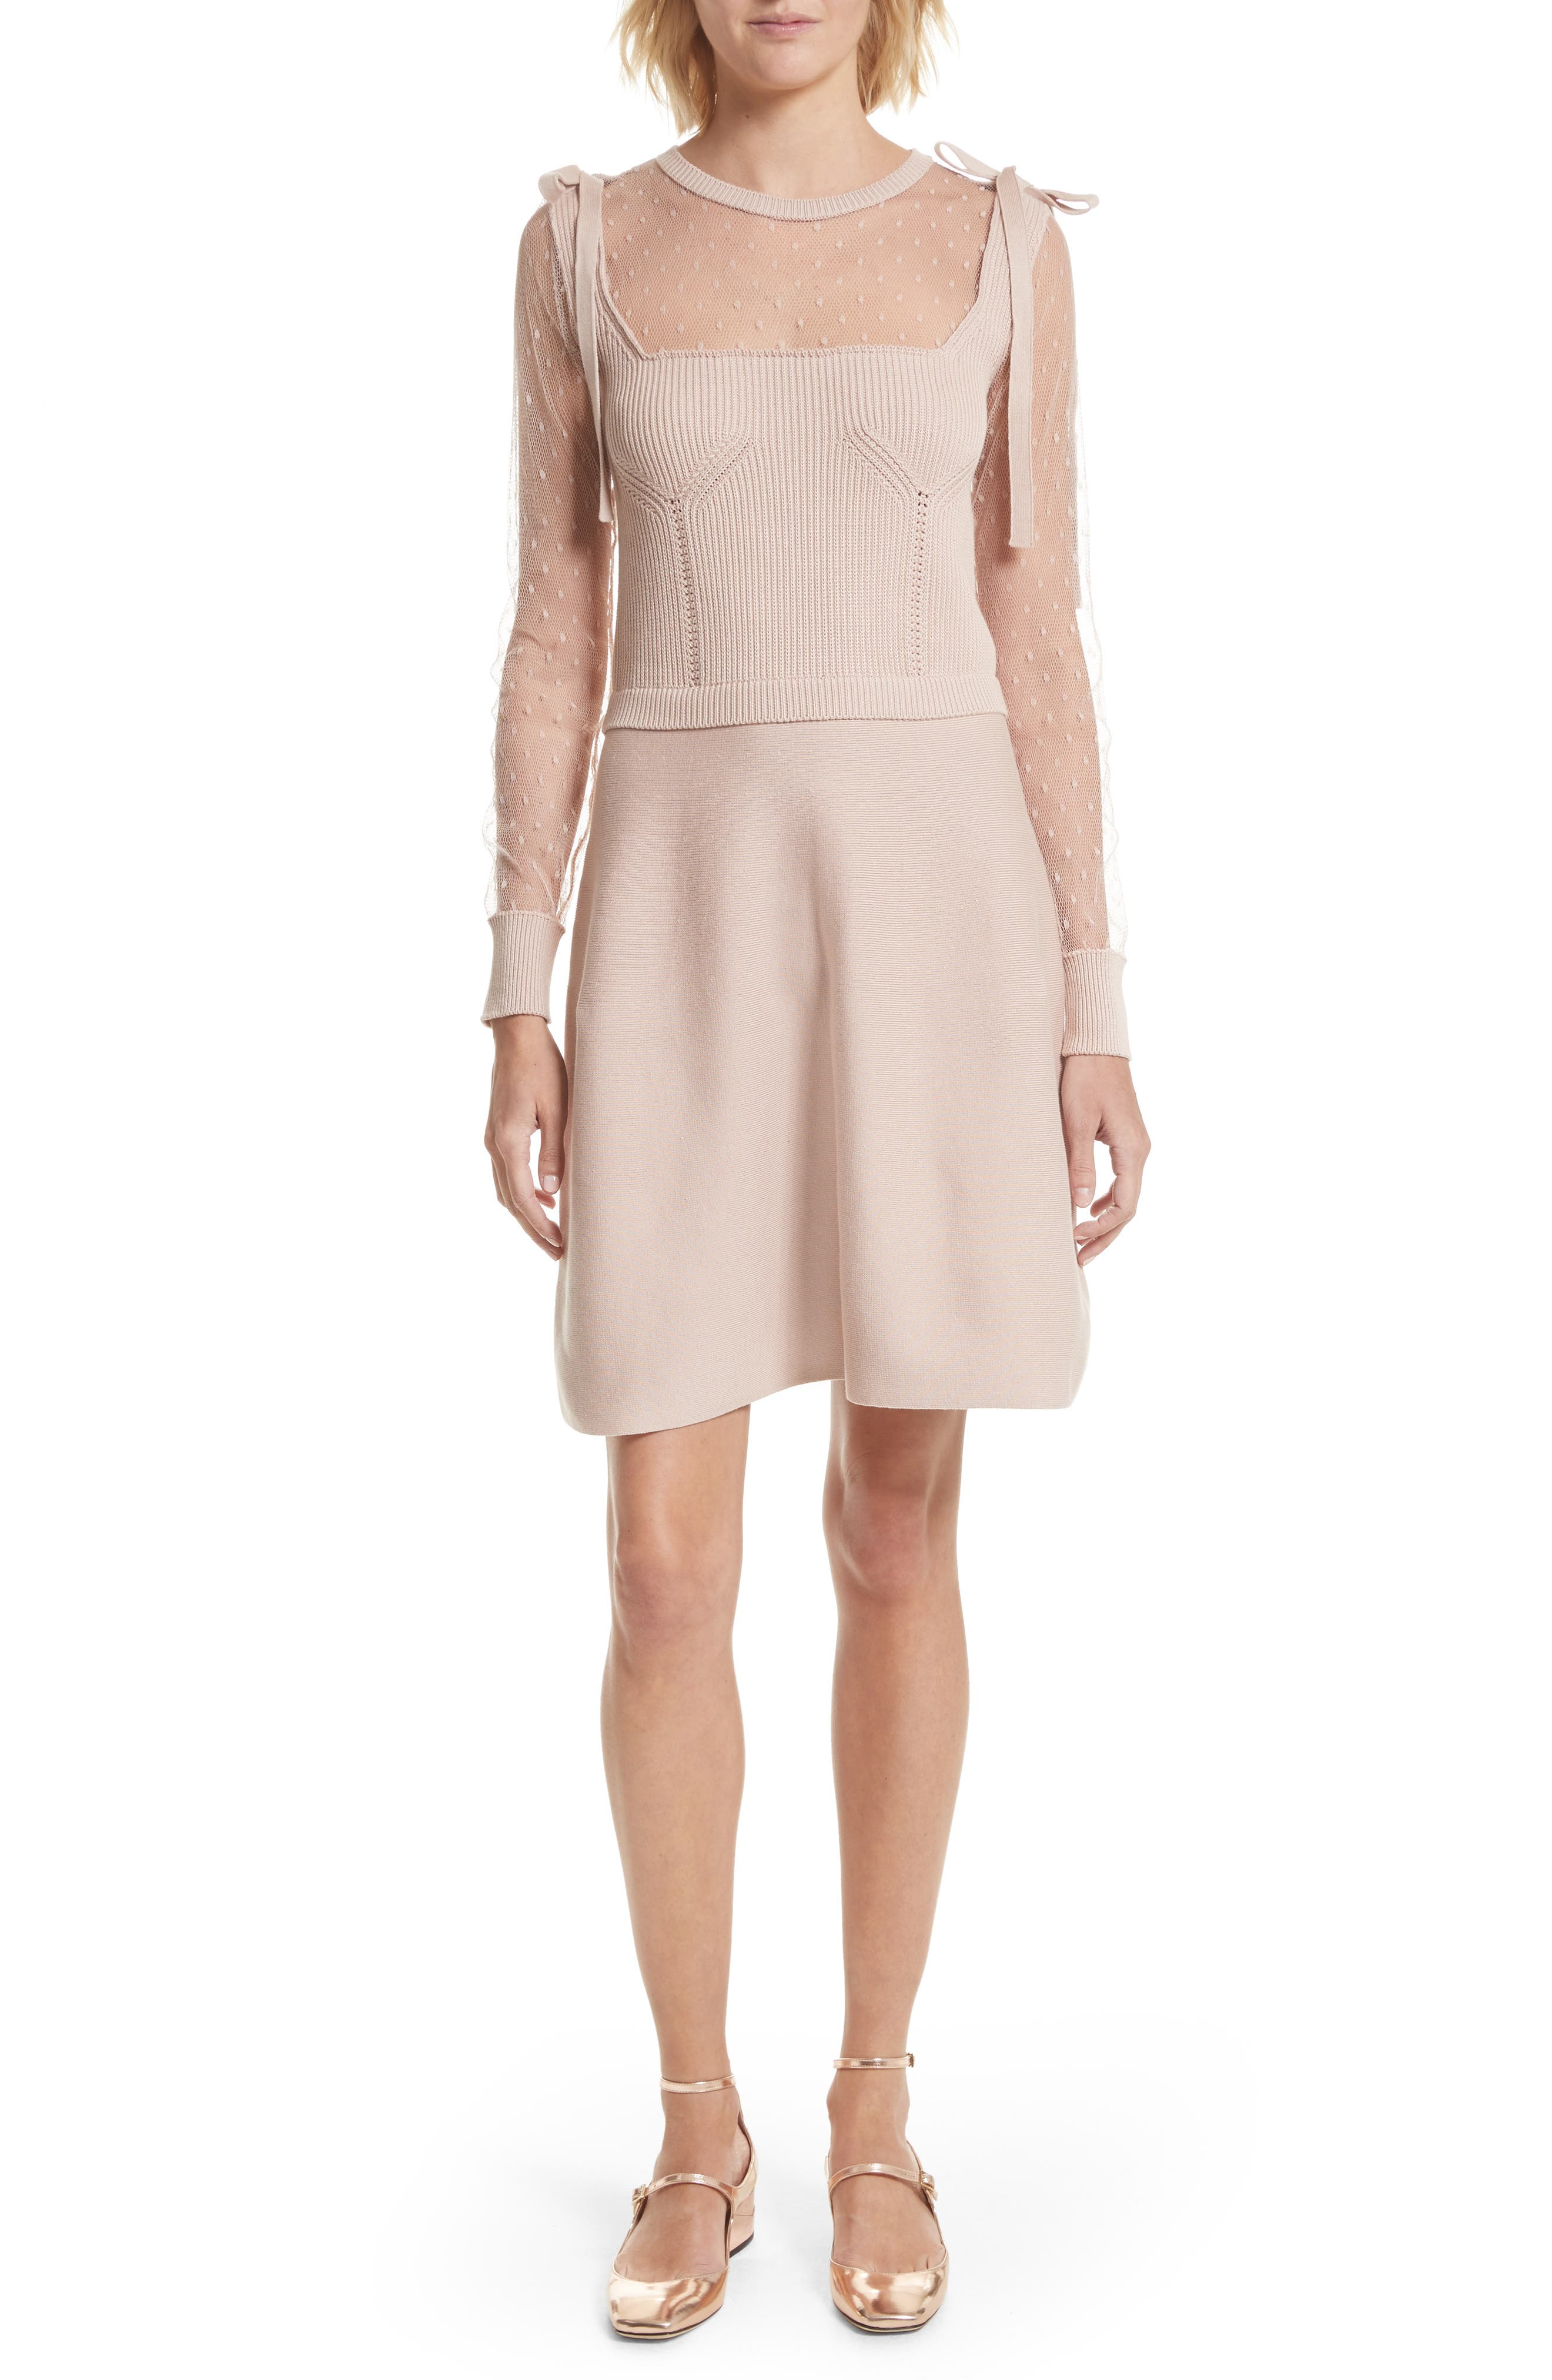 Alternate Image 1 Selected - RED Valentino Point d'Esprit Cotton Dress